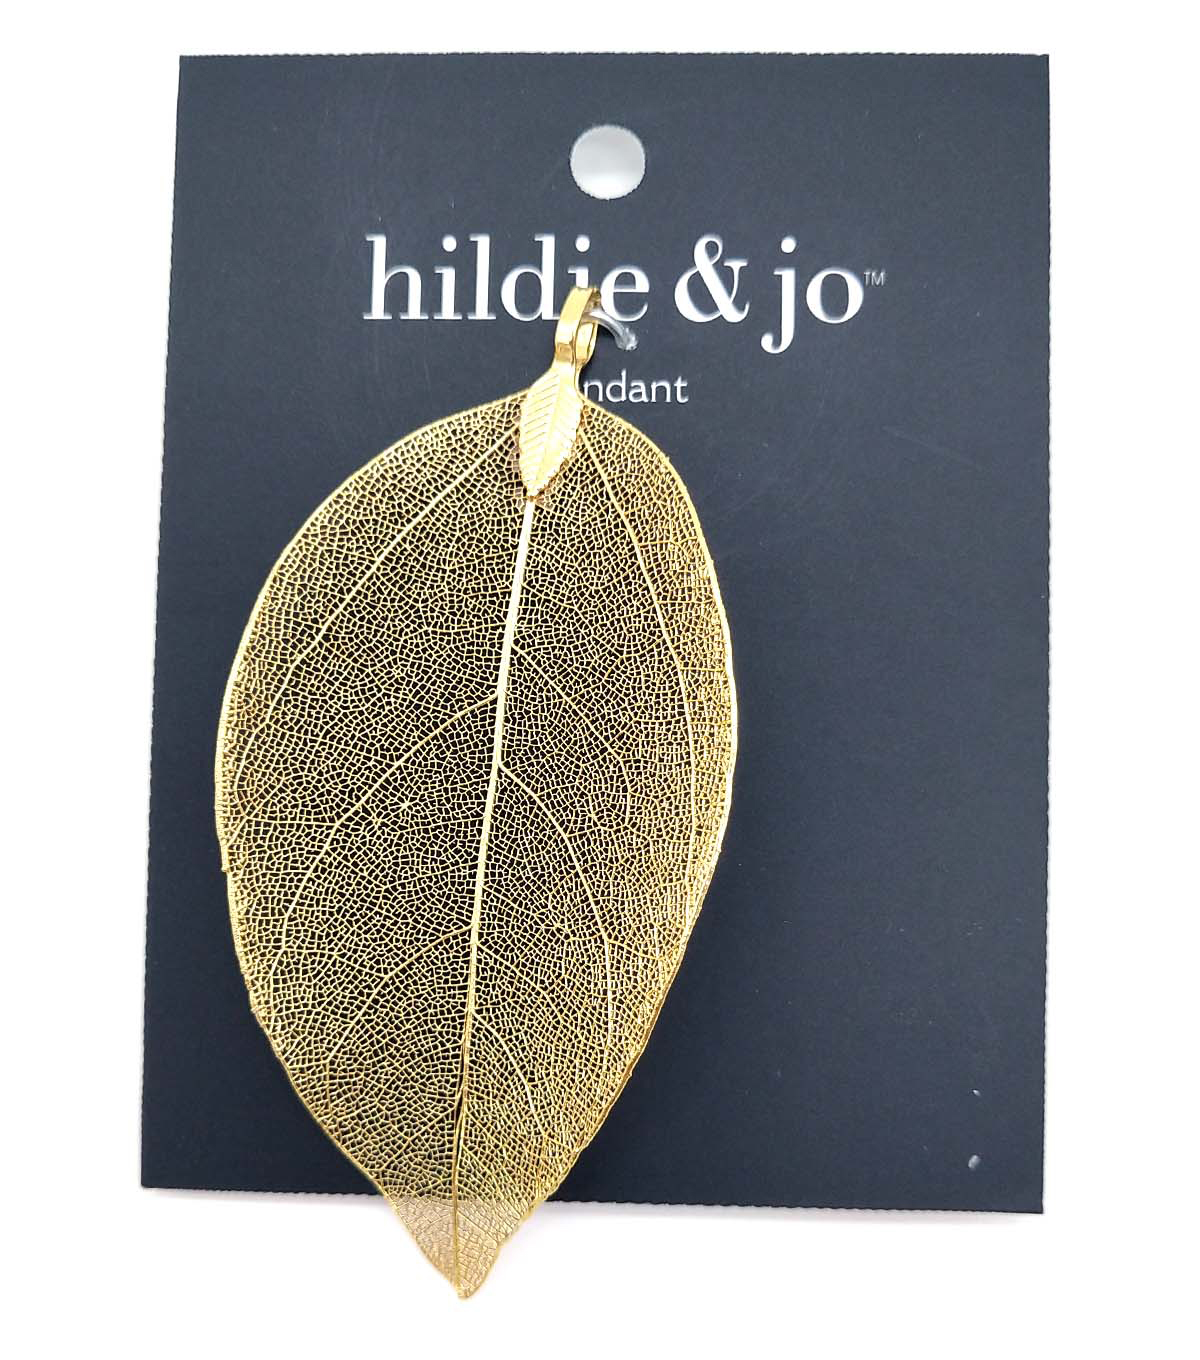 hildie & jo Stone Gold Leaf Pendant